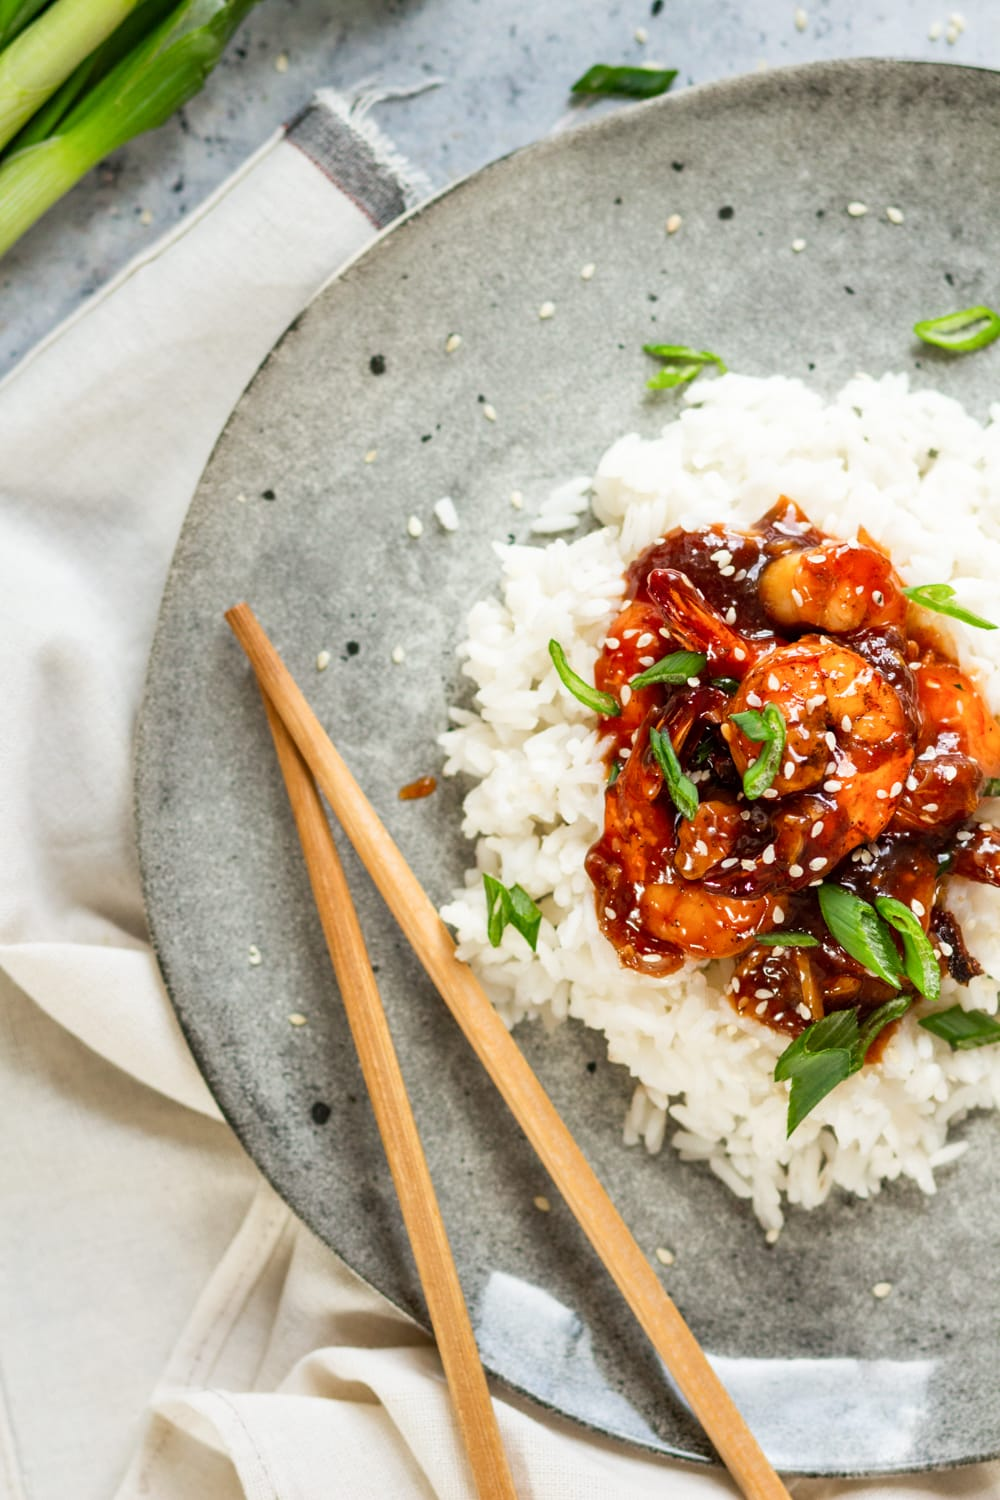 An overhead view of a few pieces of sweet and sour shrimp on a pile of white rice on a grey plate. There are sesame seeds and sliced green onions on the shrimp. A pair of chopsticks is on the plate next to the left of the shrimp. The plate is on a bunched white tablecloth.